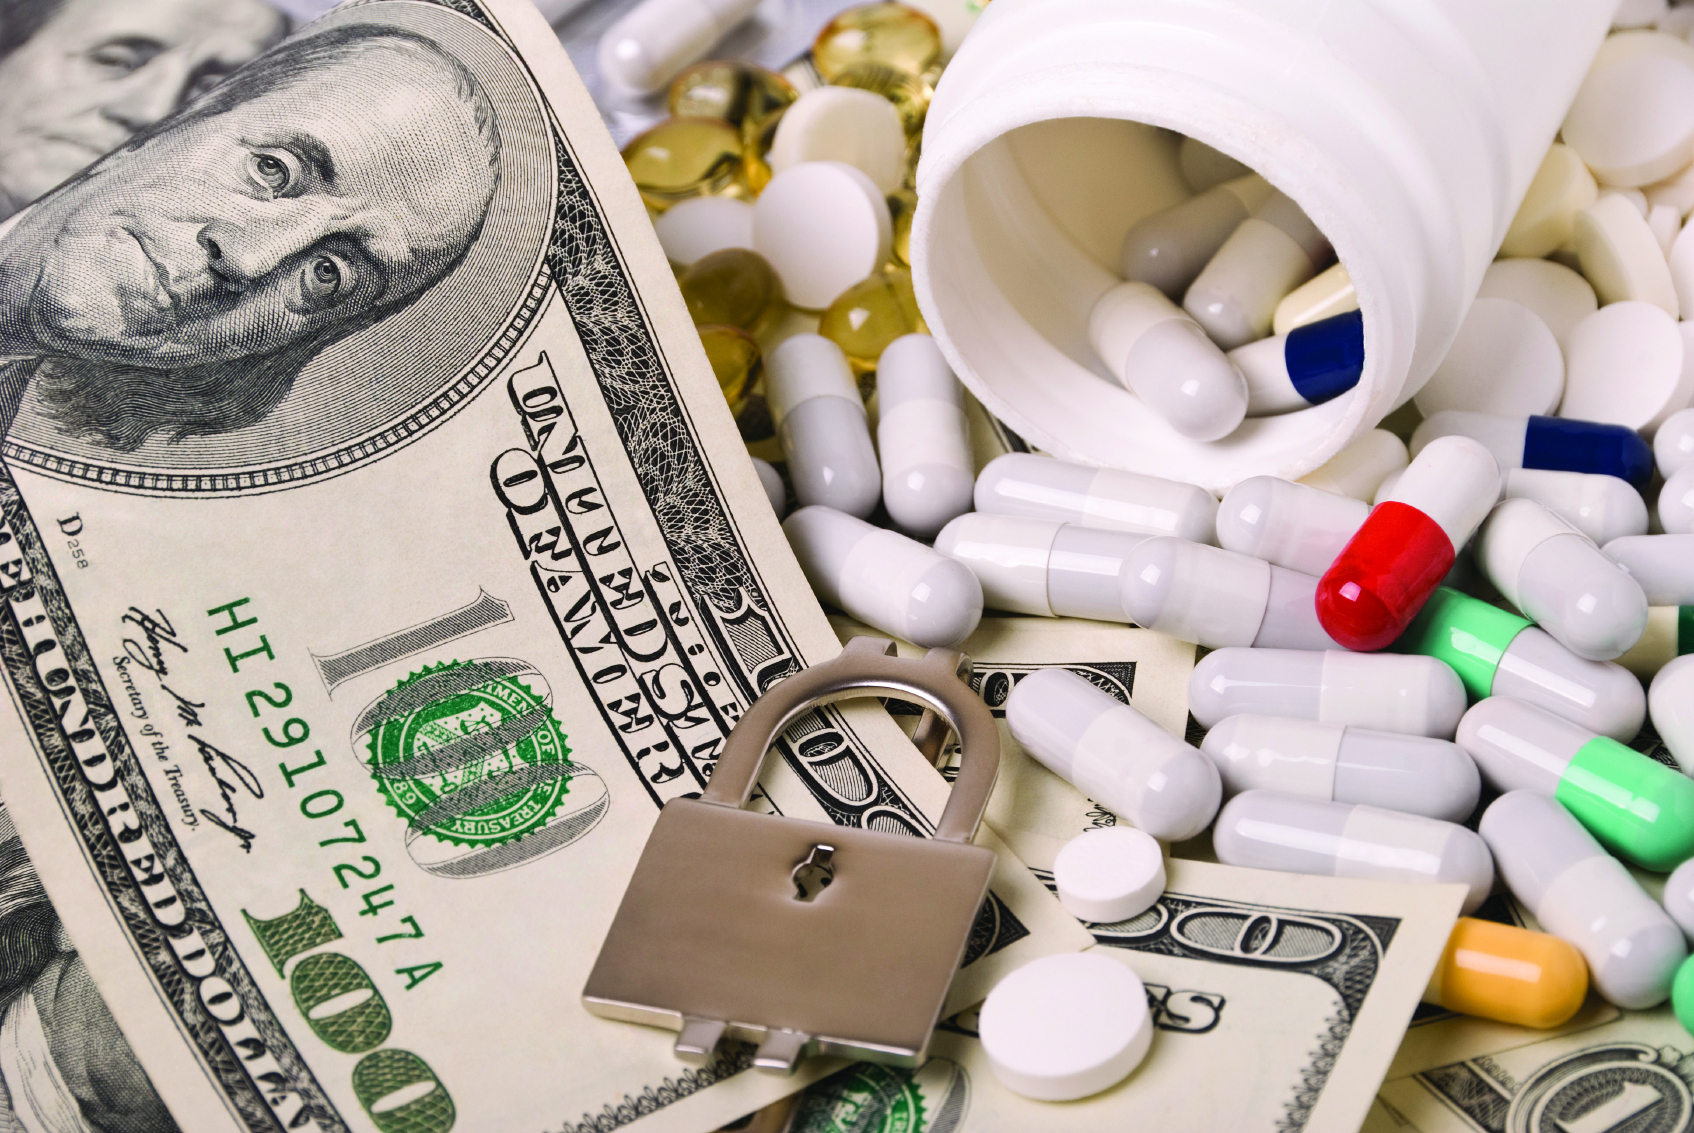 Kaiser Reverses Policy That Increased Patients' Costs for HIV Drugs